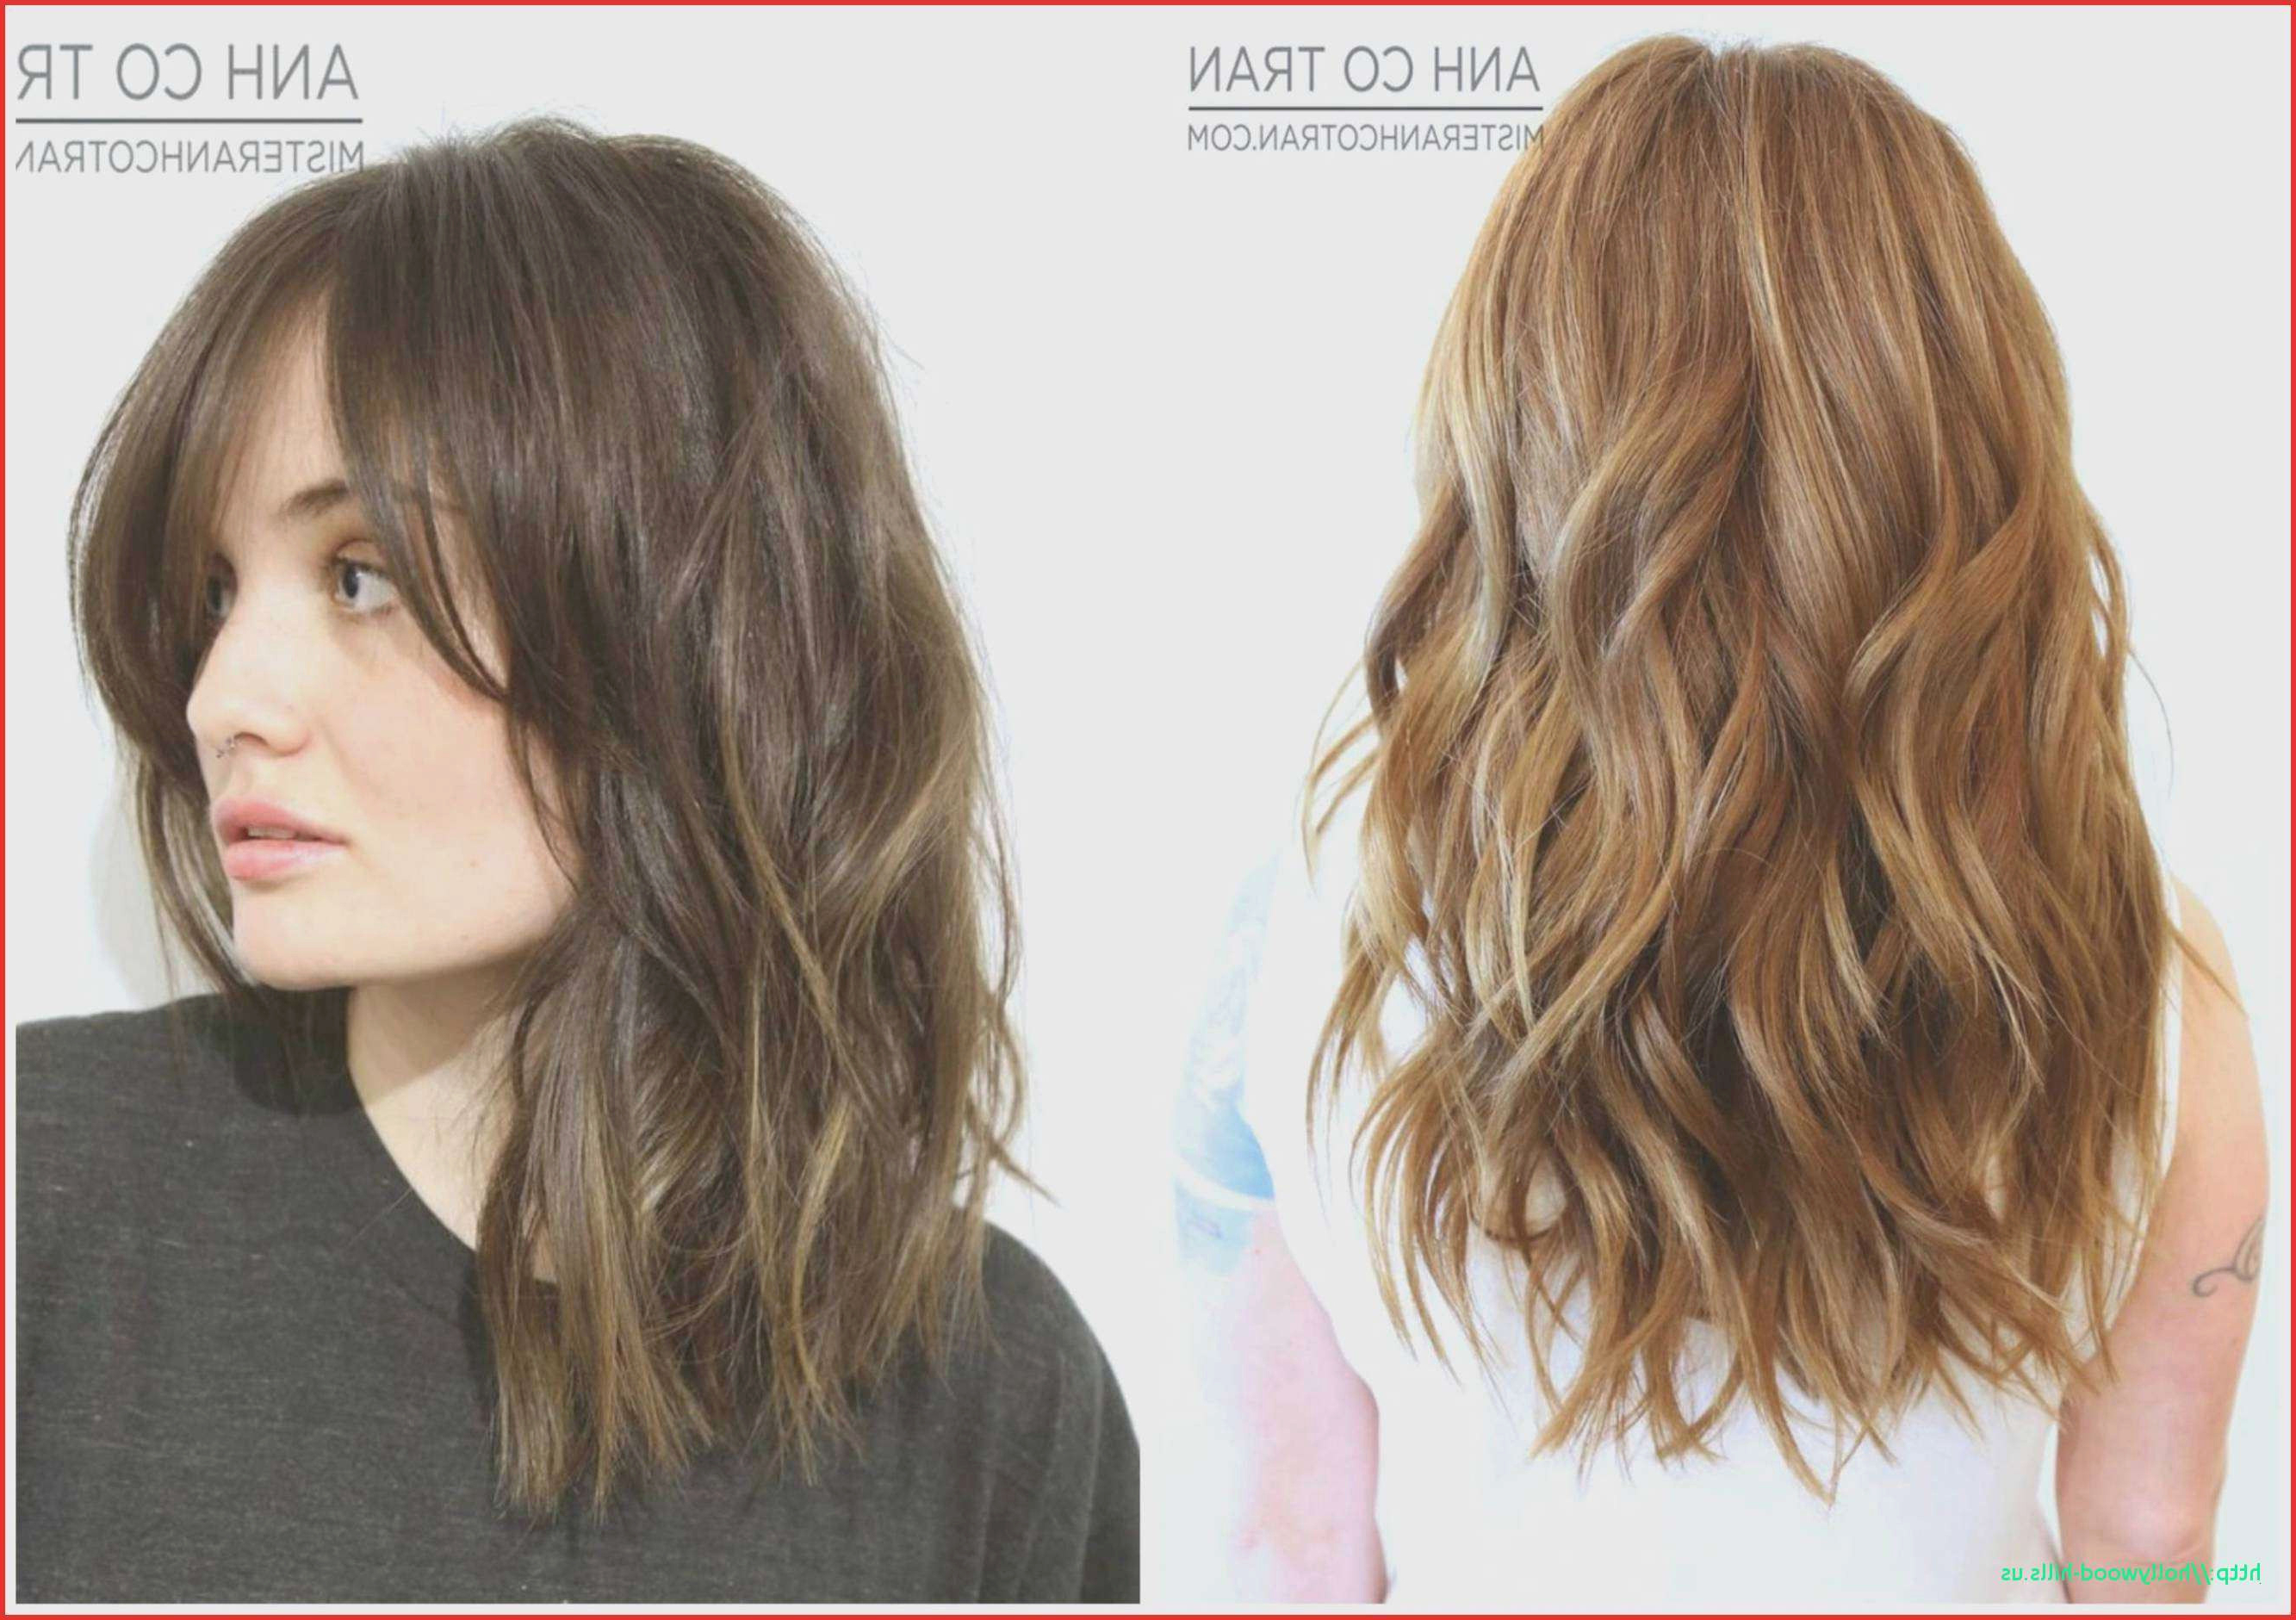 Hairstyles : Hairstyles For Medium Layered Hair Scenic Hairstyles Pertaining To Fashionable Choppy Layers Hairstyles (View 11 of 20)